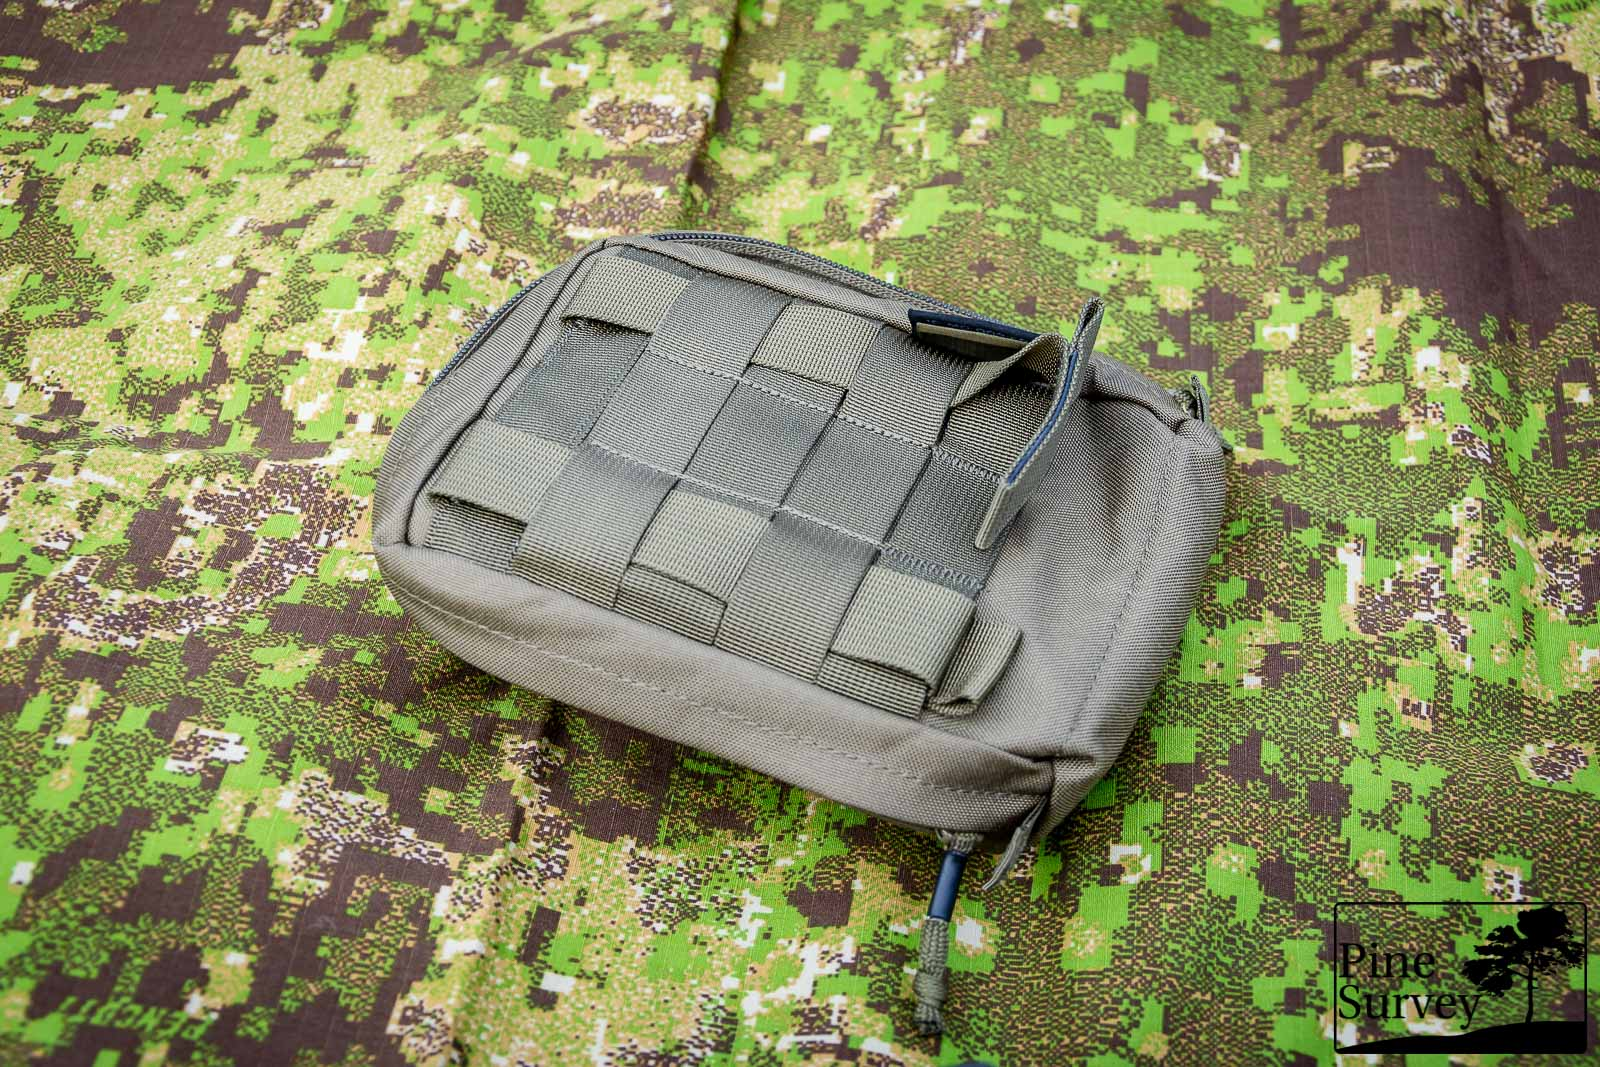 MOLLE webbing on the backside